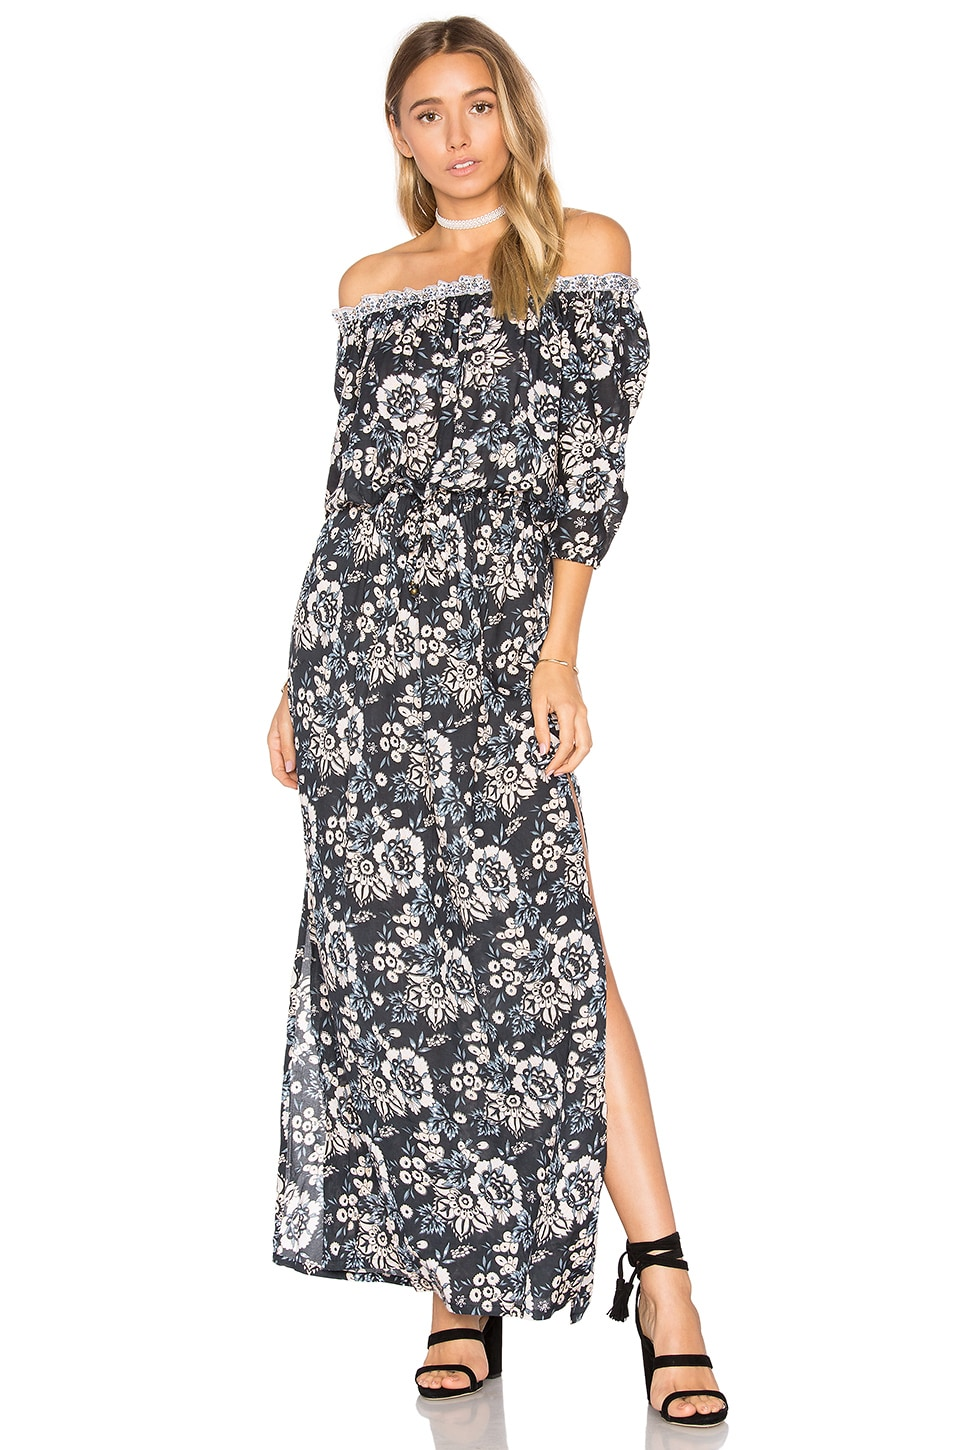 Tiare Hawaii Sage Maxi Dress in Folk Black